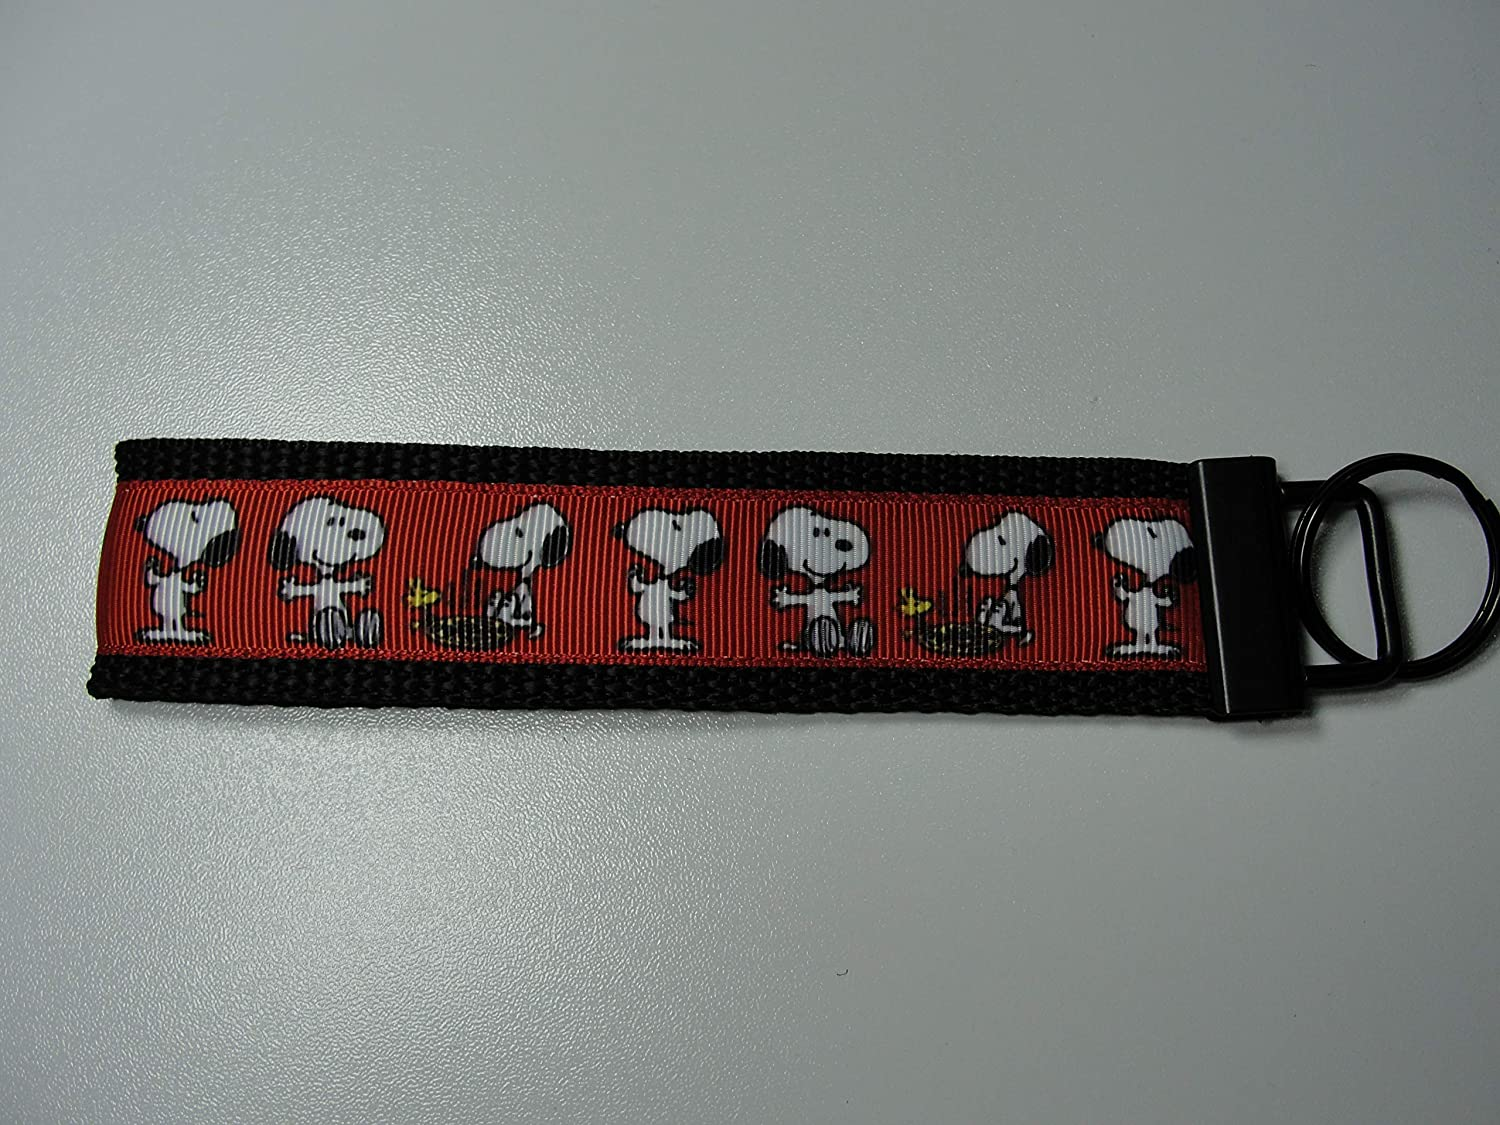 Peanuts Snoopy Woodstock on Red Keyfob Strap or Keychain - Purse or Wallet Strap Wristlet